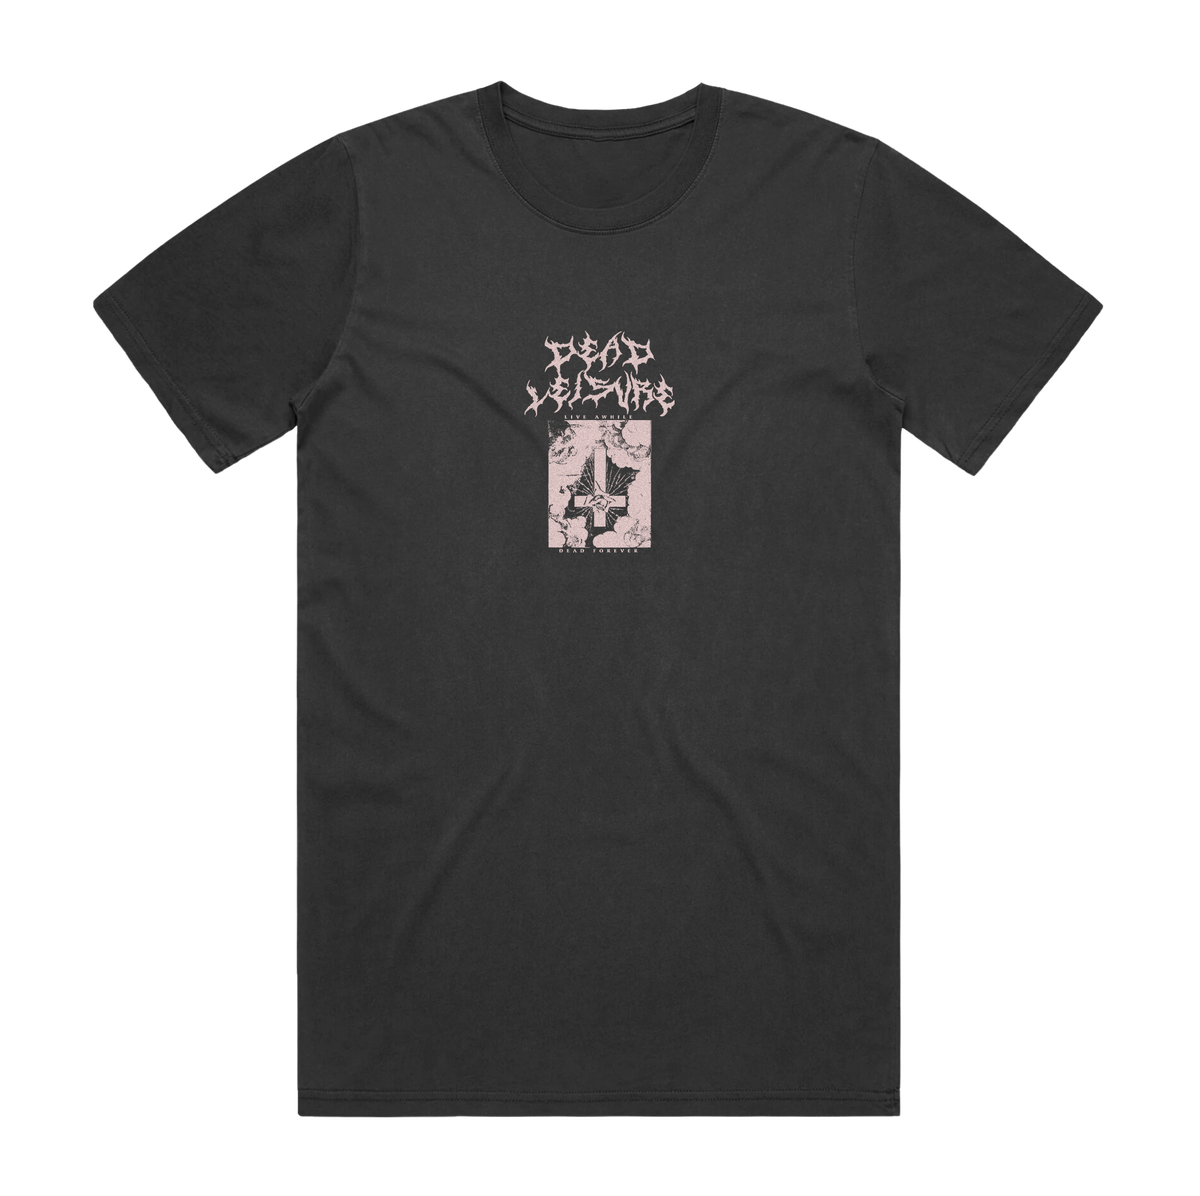 Dead Forever T-shirt - Charcoal